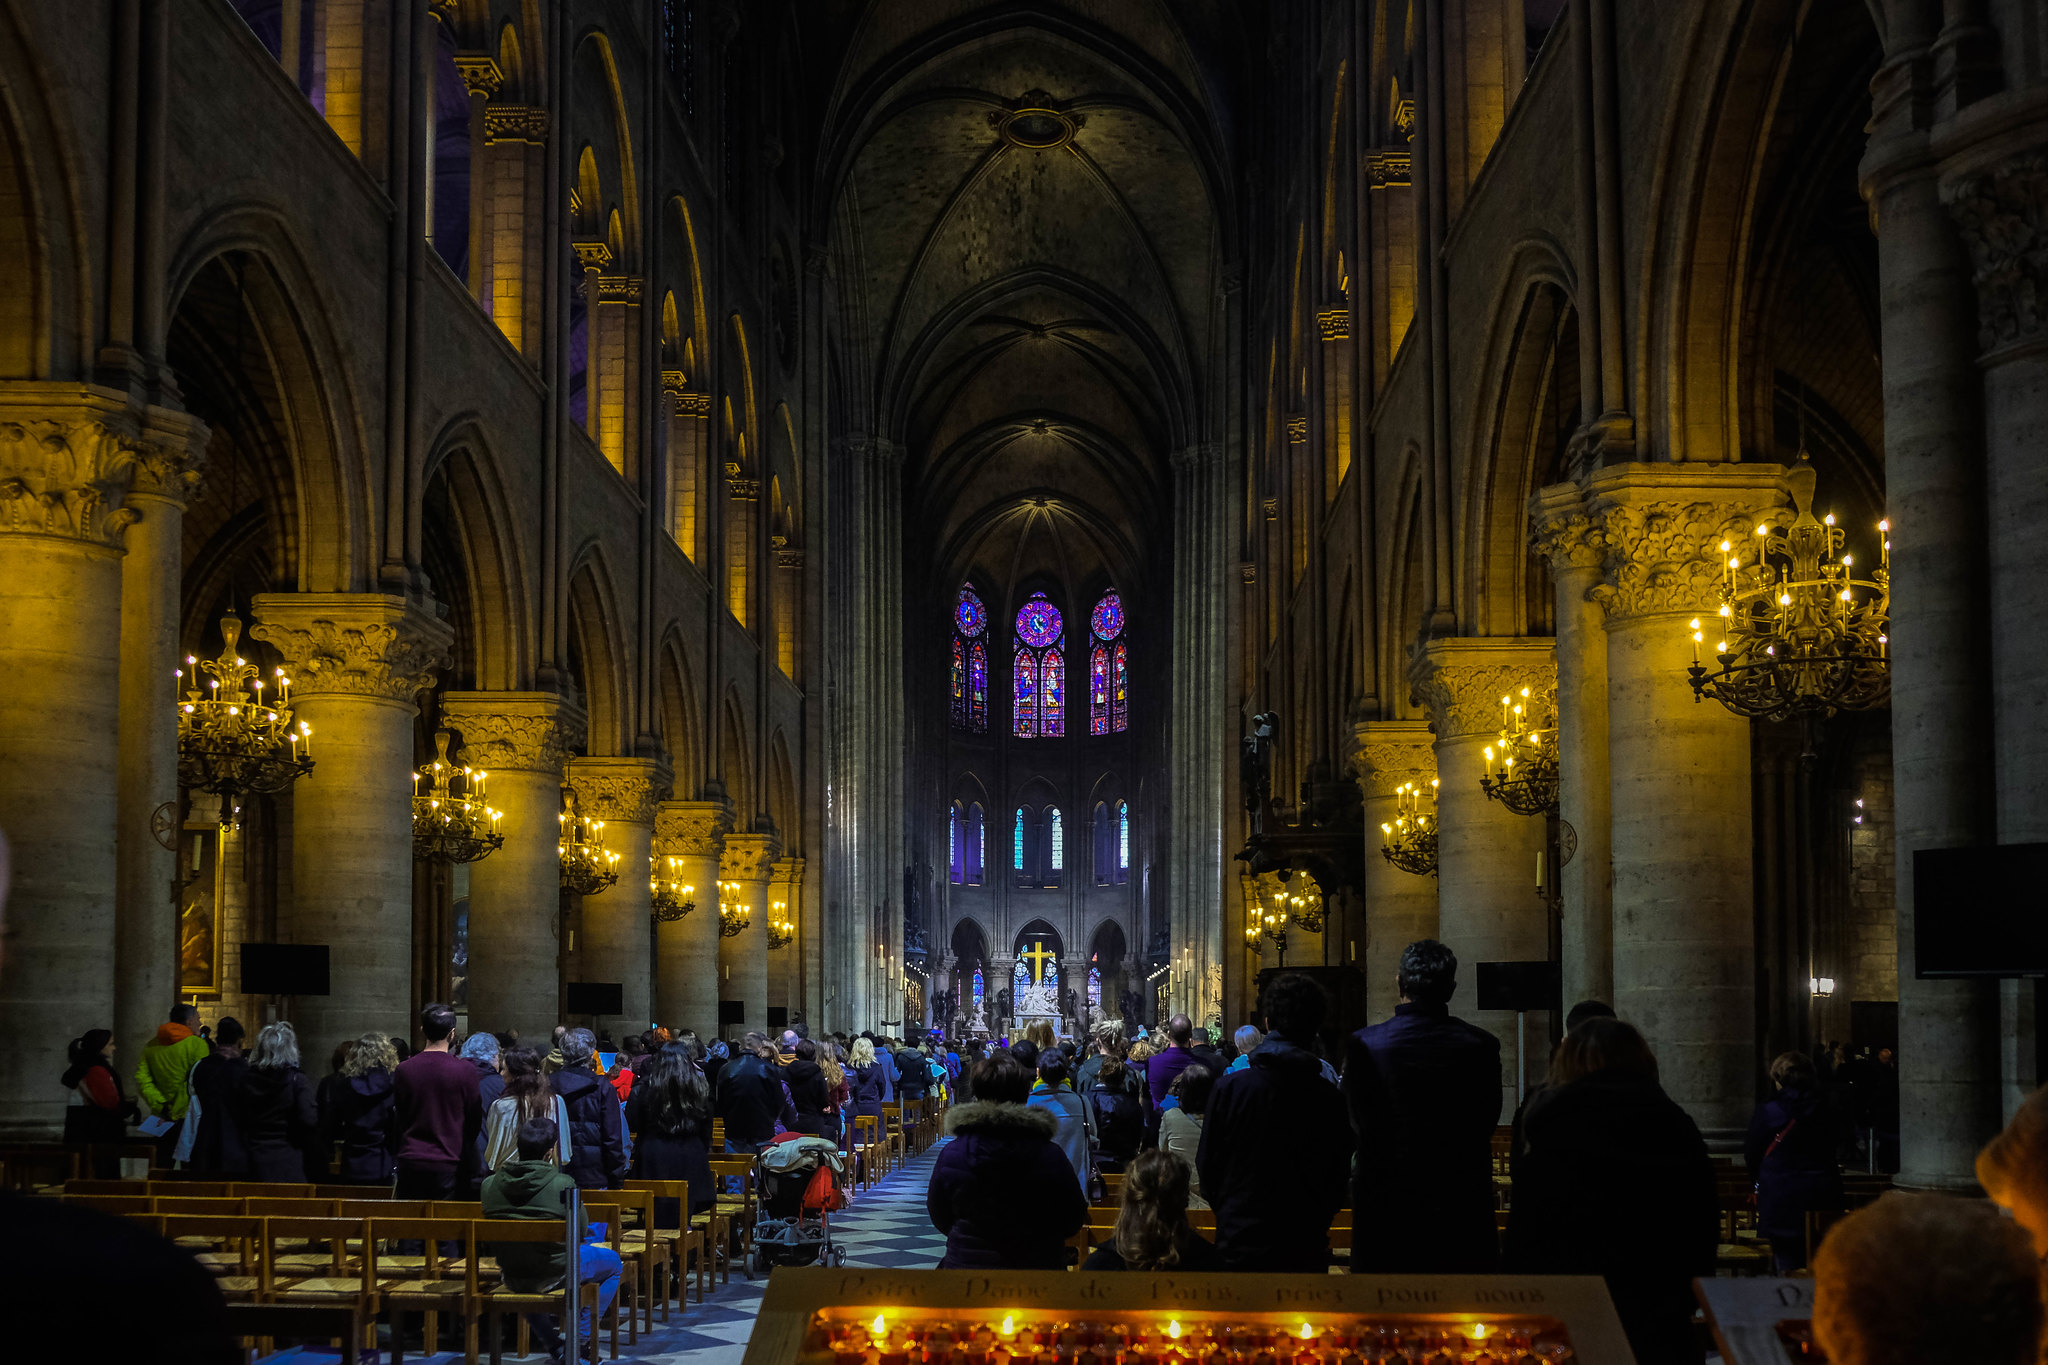 Inside Notre-Dame de Paris, March 2019